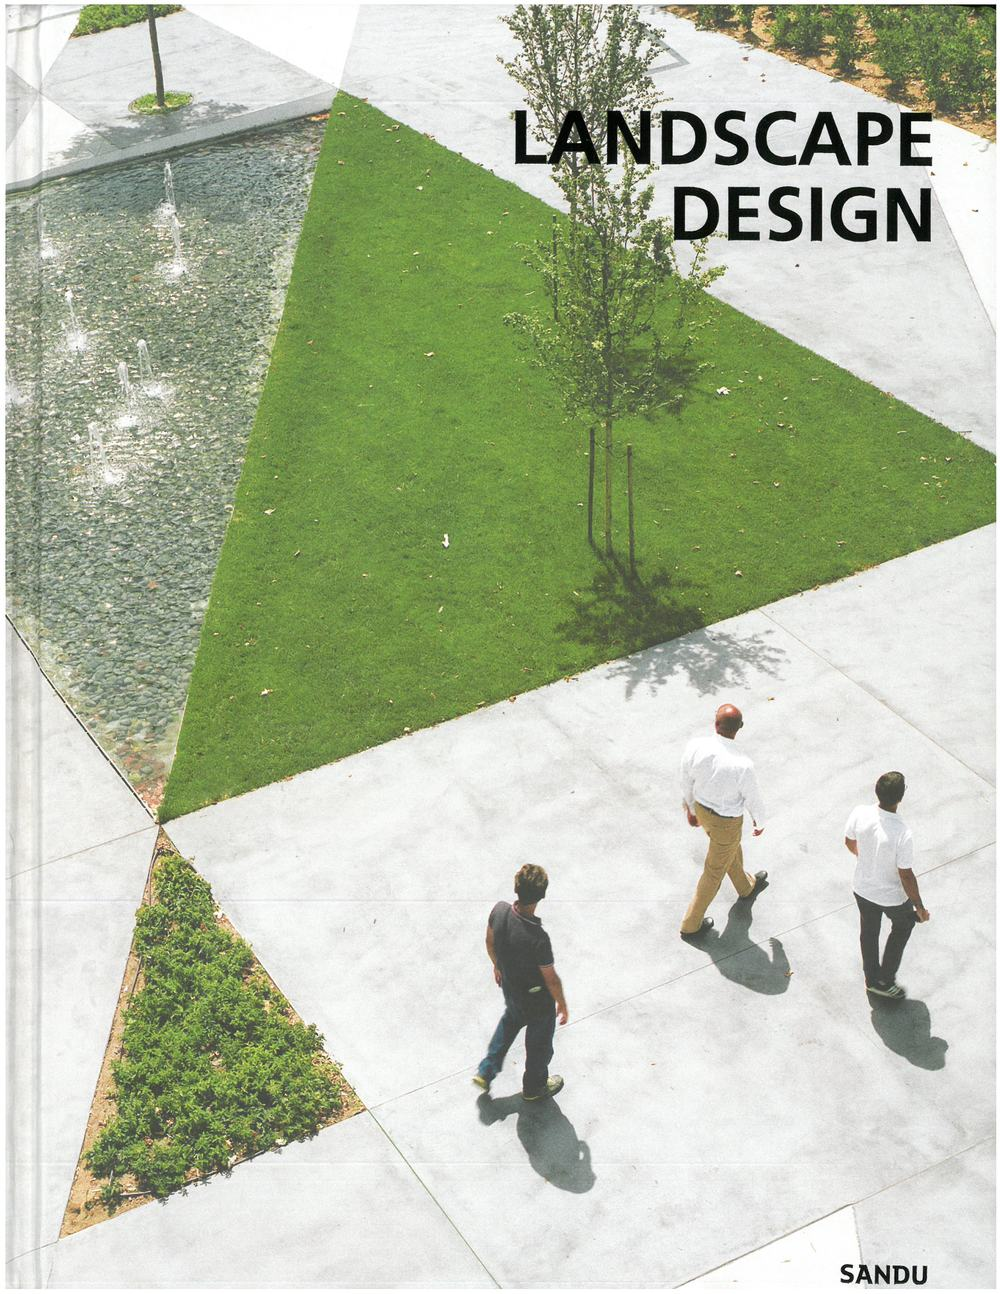 Landscape Design cover.jpg